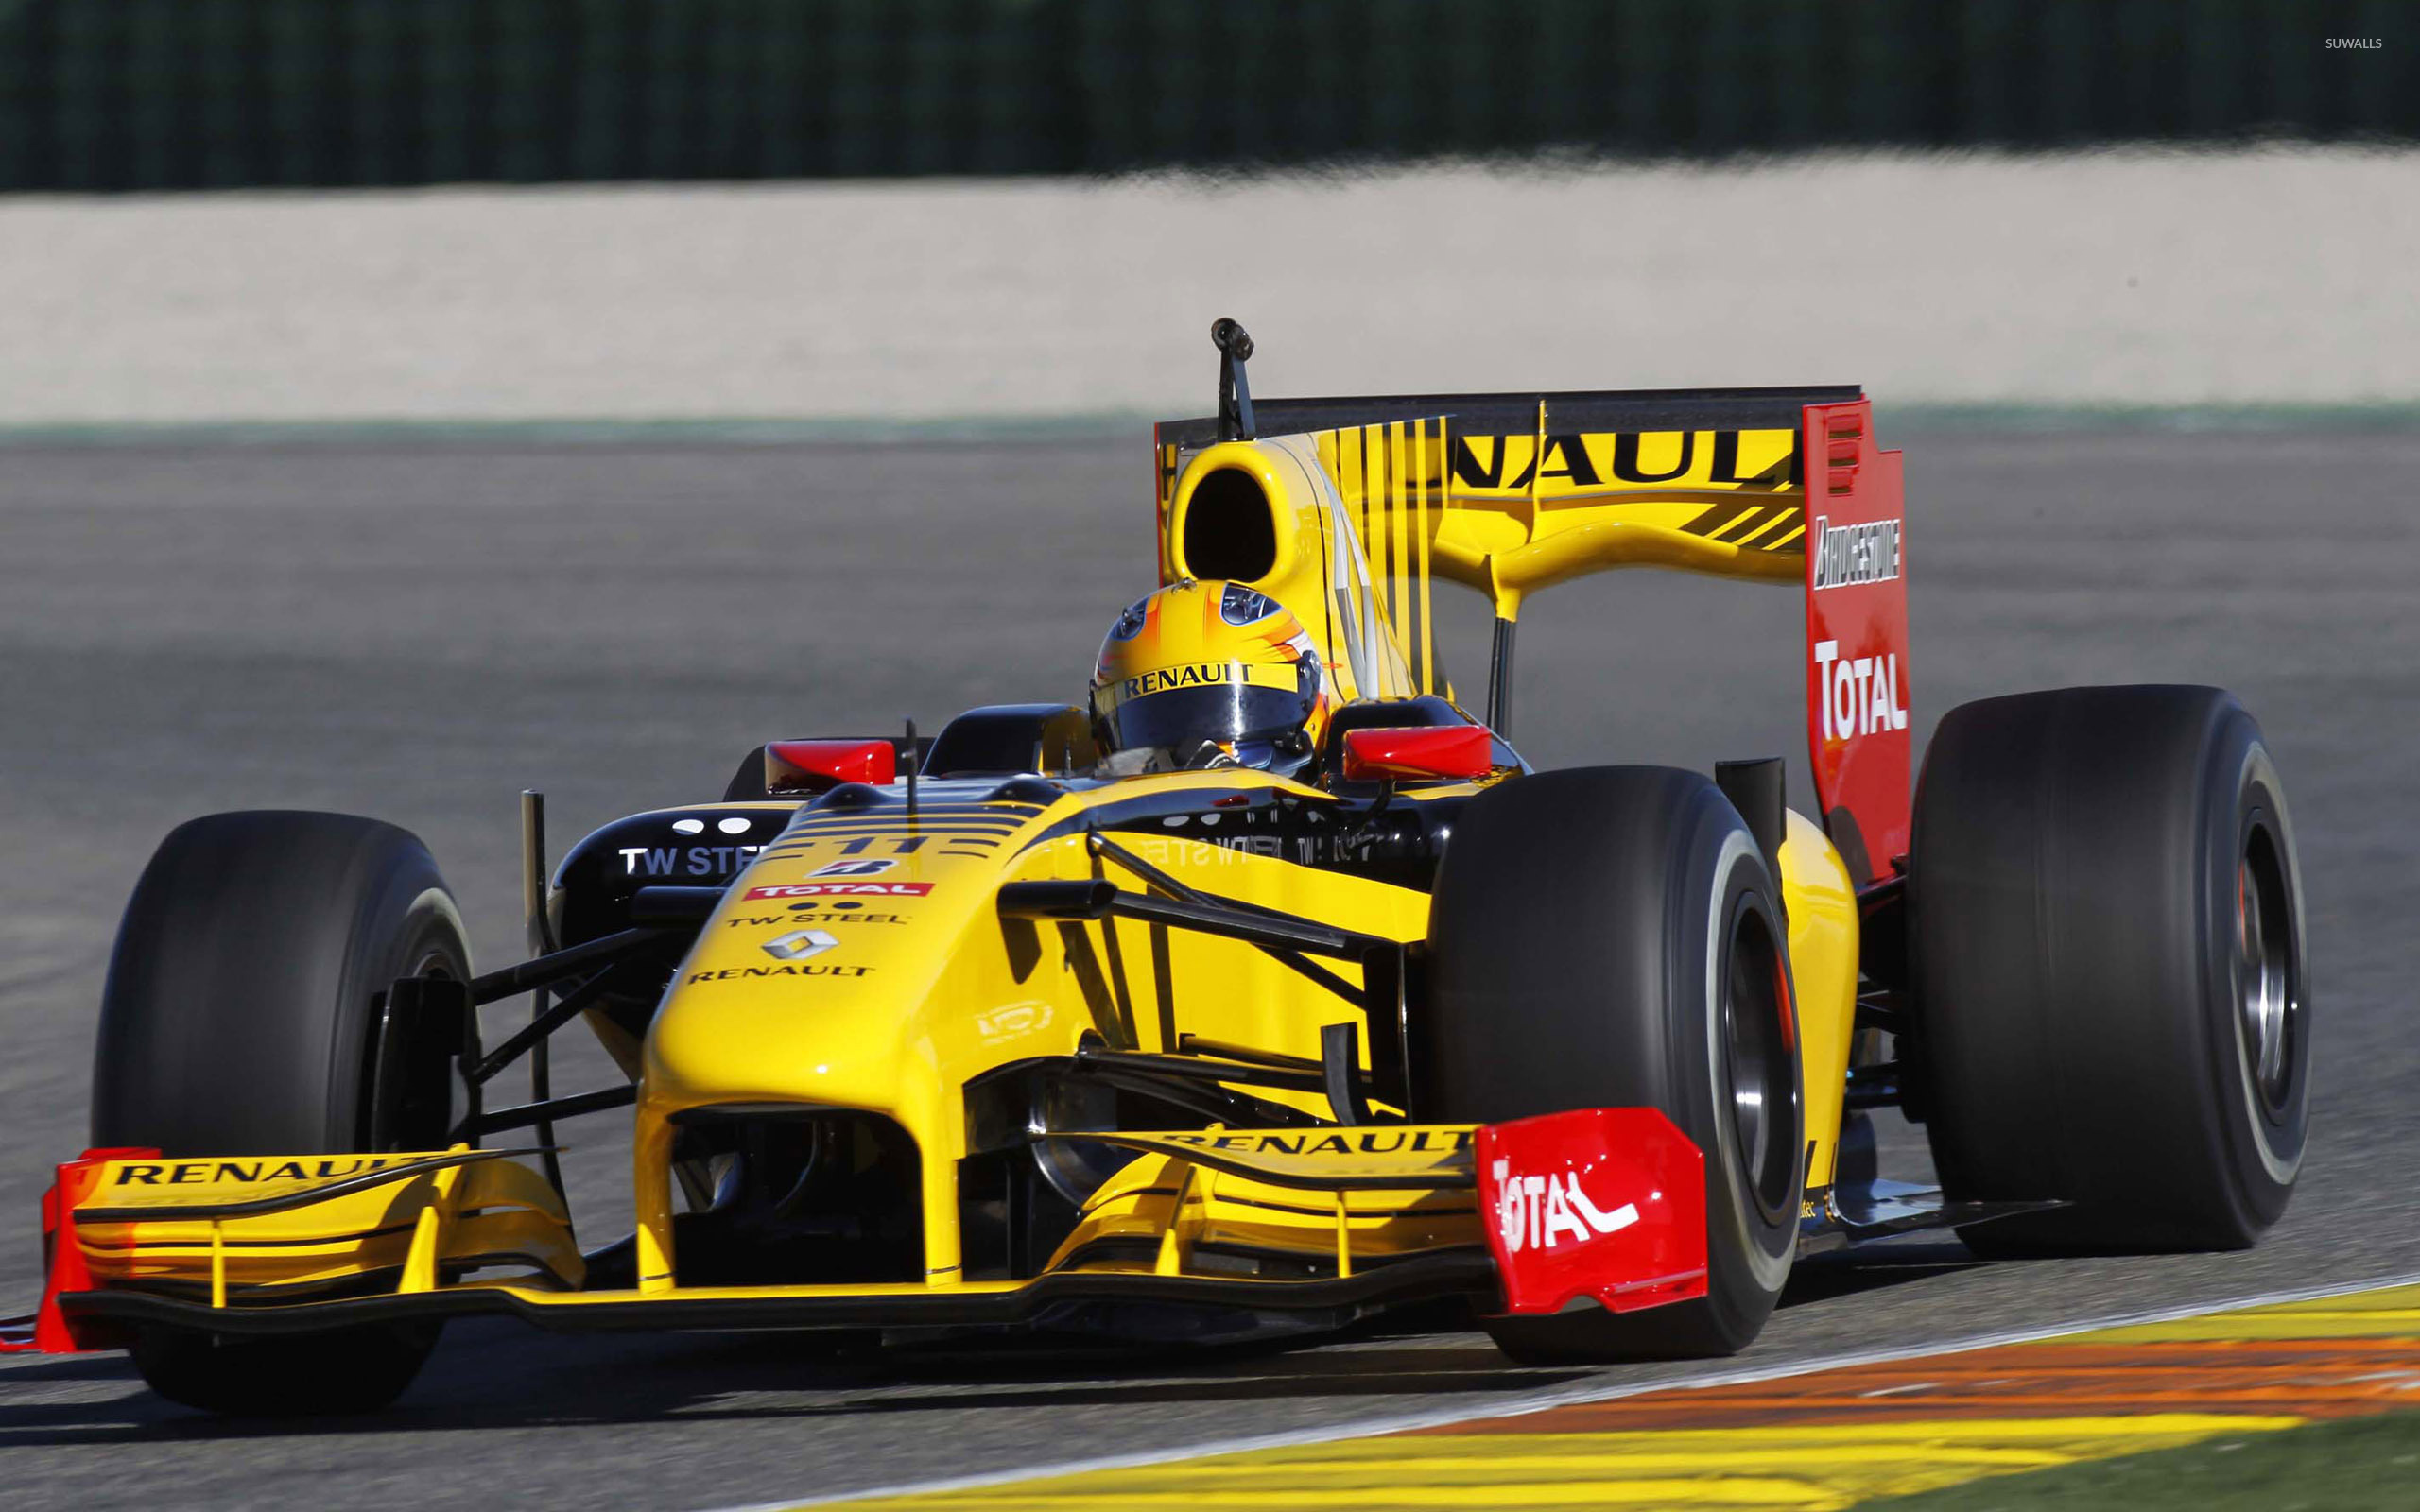 Robert kubica f1 wallpaper car wallpapers 32389 for Kubica cars